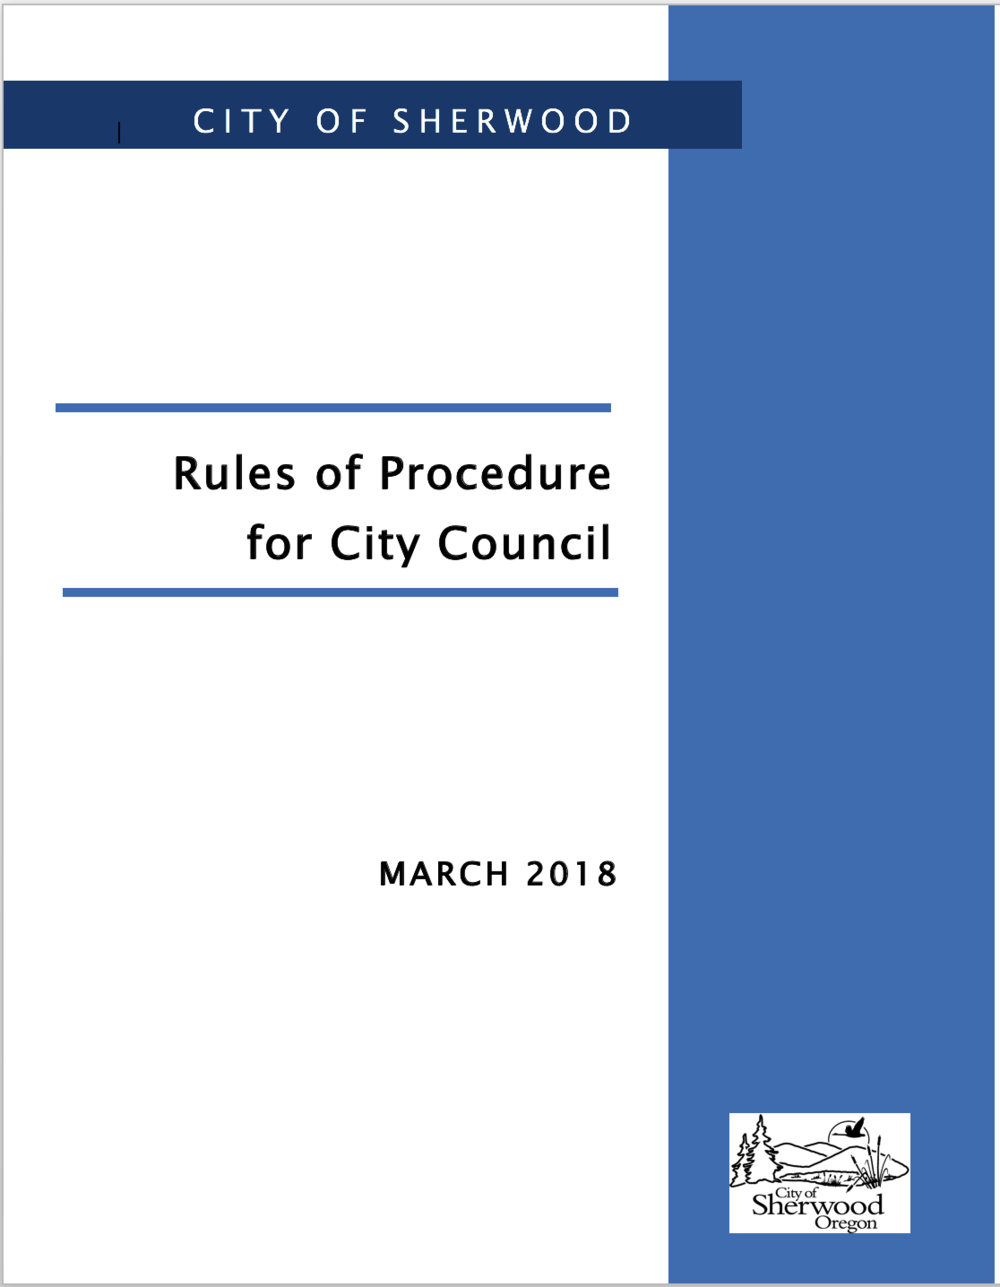 New City CounciL Rules